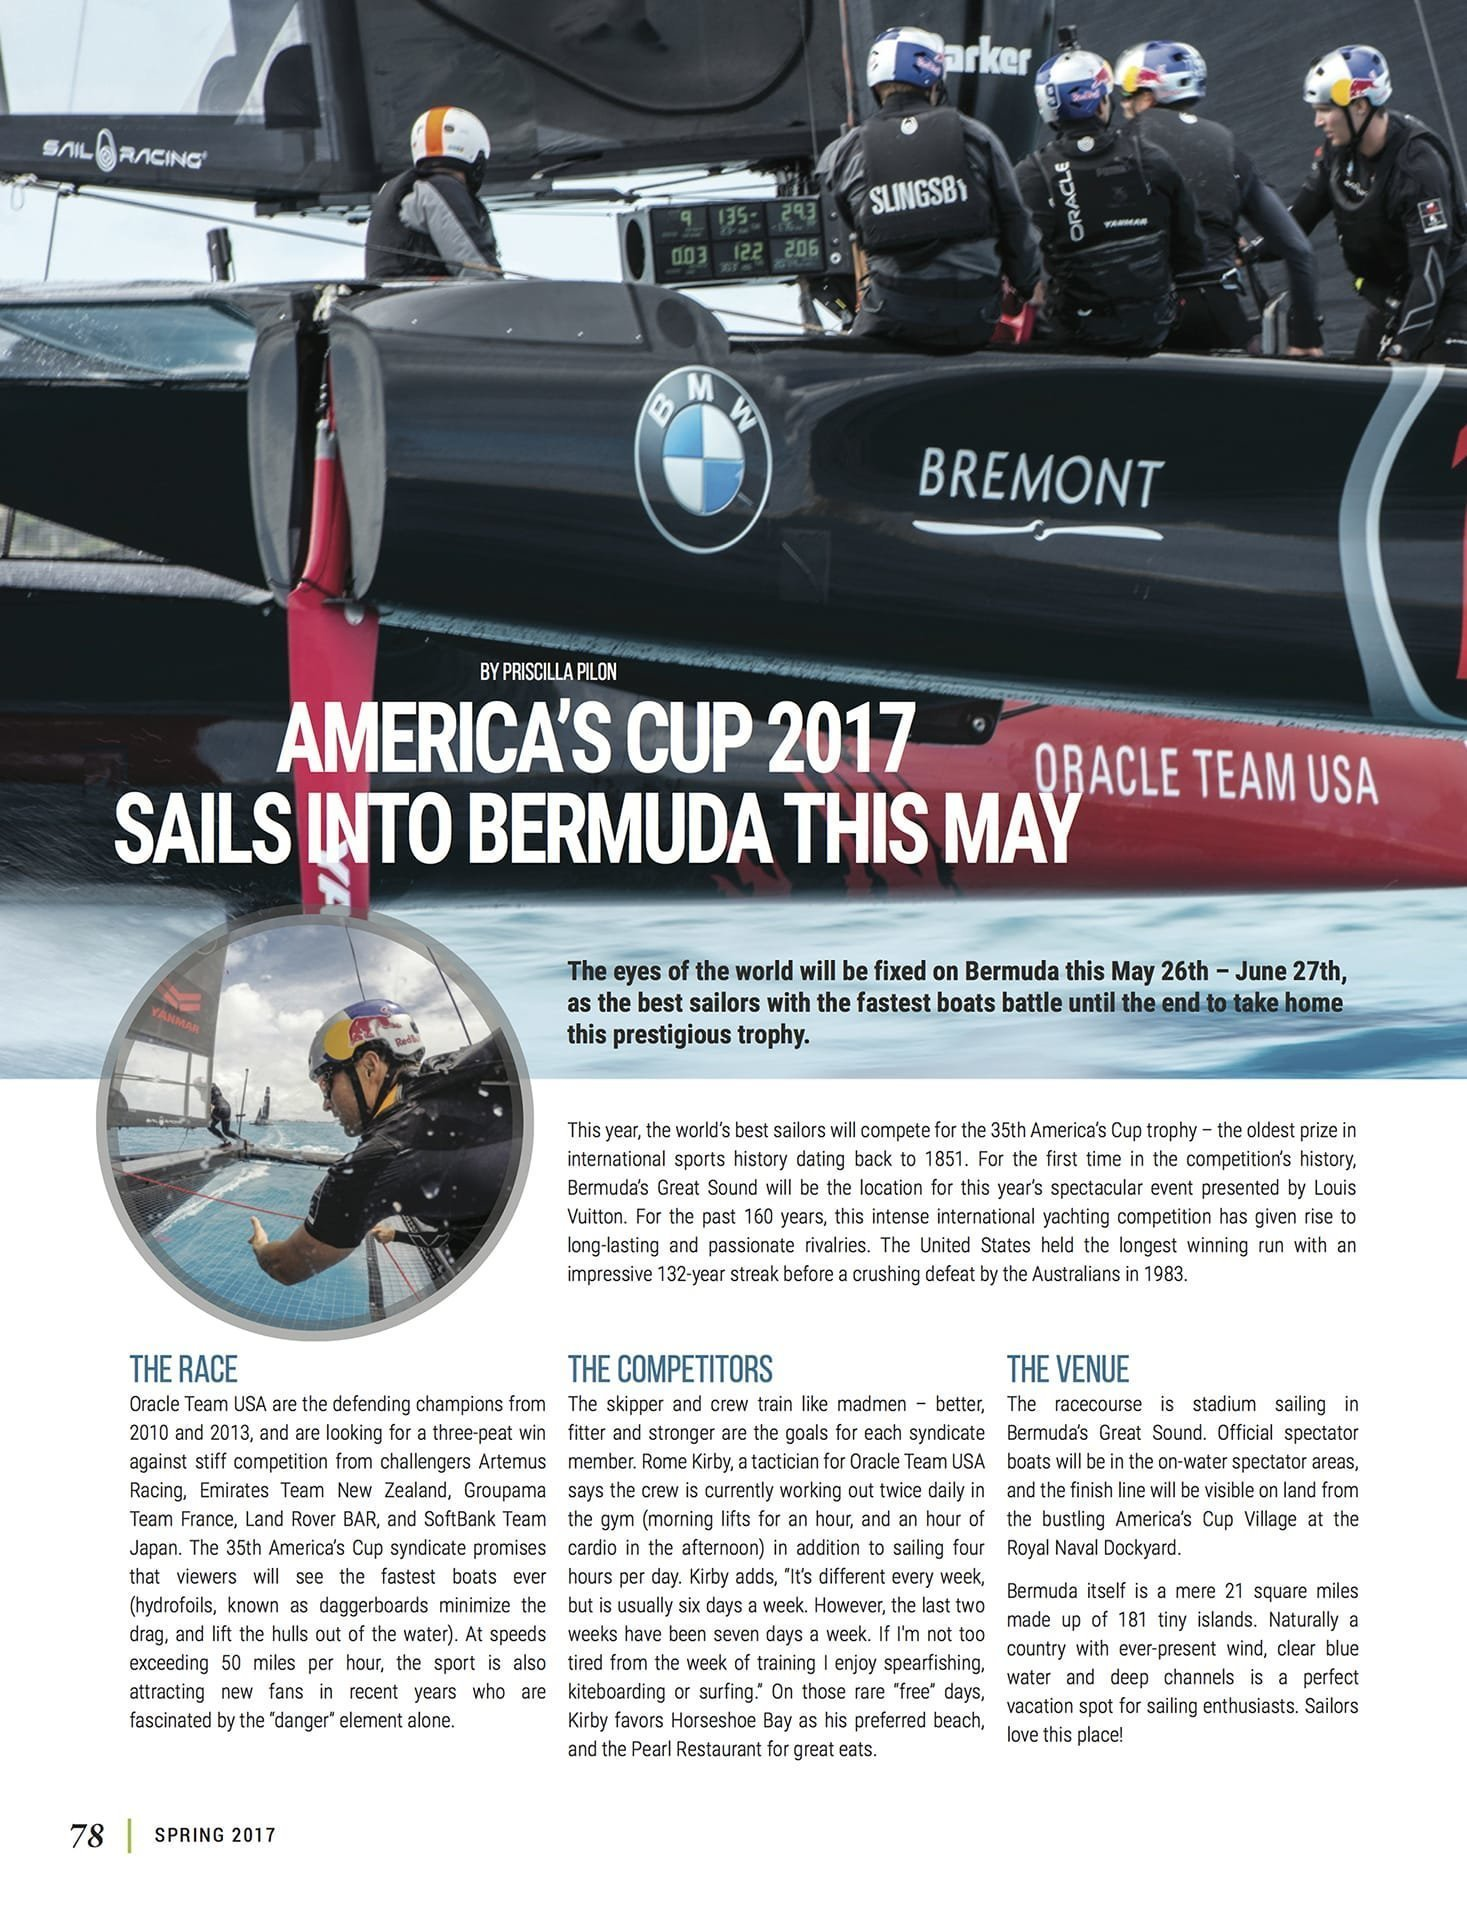 LuxeGetaways - Luxury Travel - Luxury Travel Magazine - Bermuda Tourism - America's Cup - Oracle Team USA